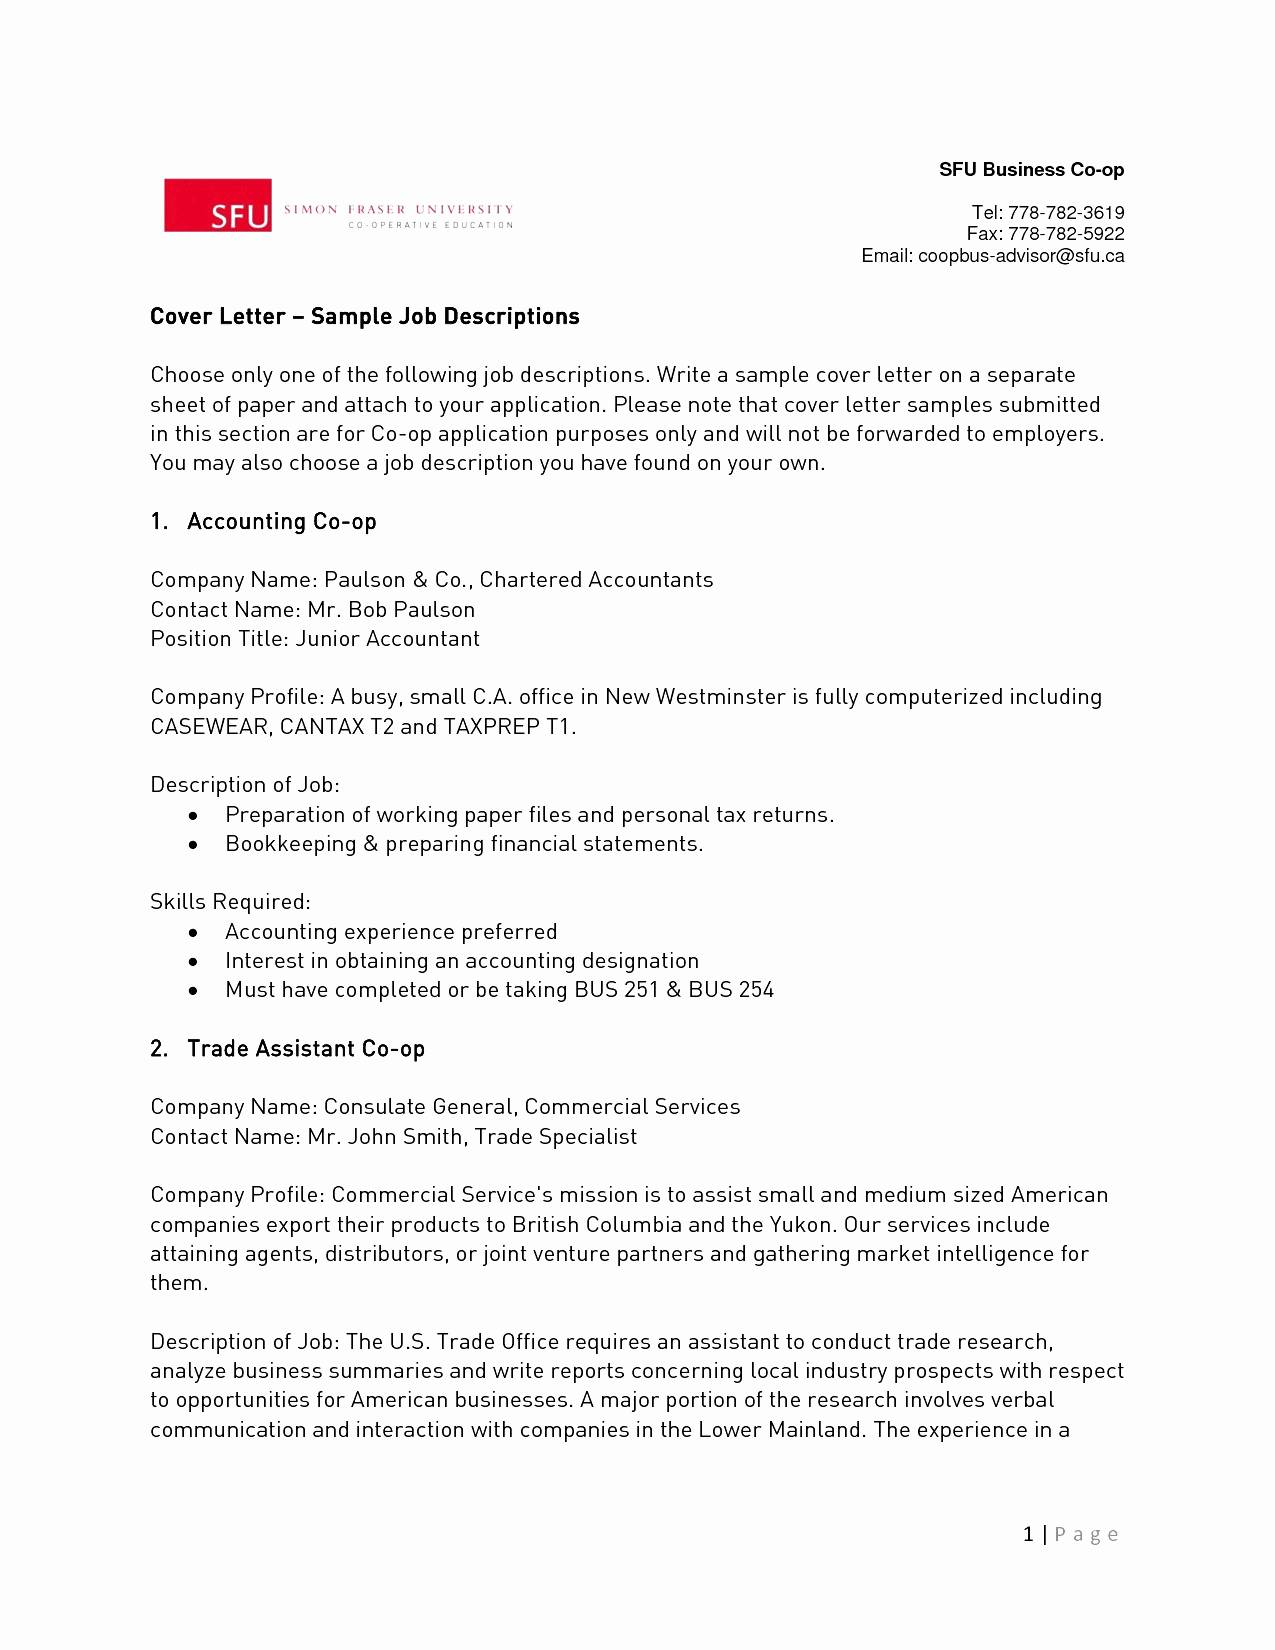 Casual Cover Letter Template - 14 Awesome Kick ass Cover Letter Resume Templates Resume Templates